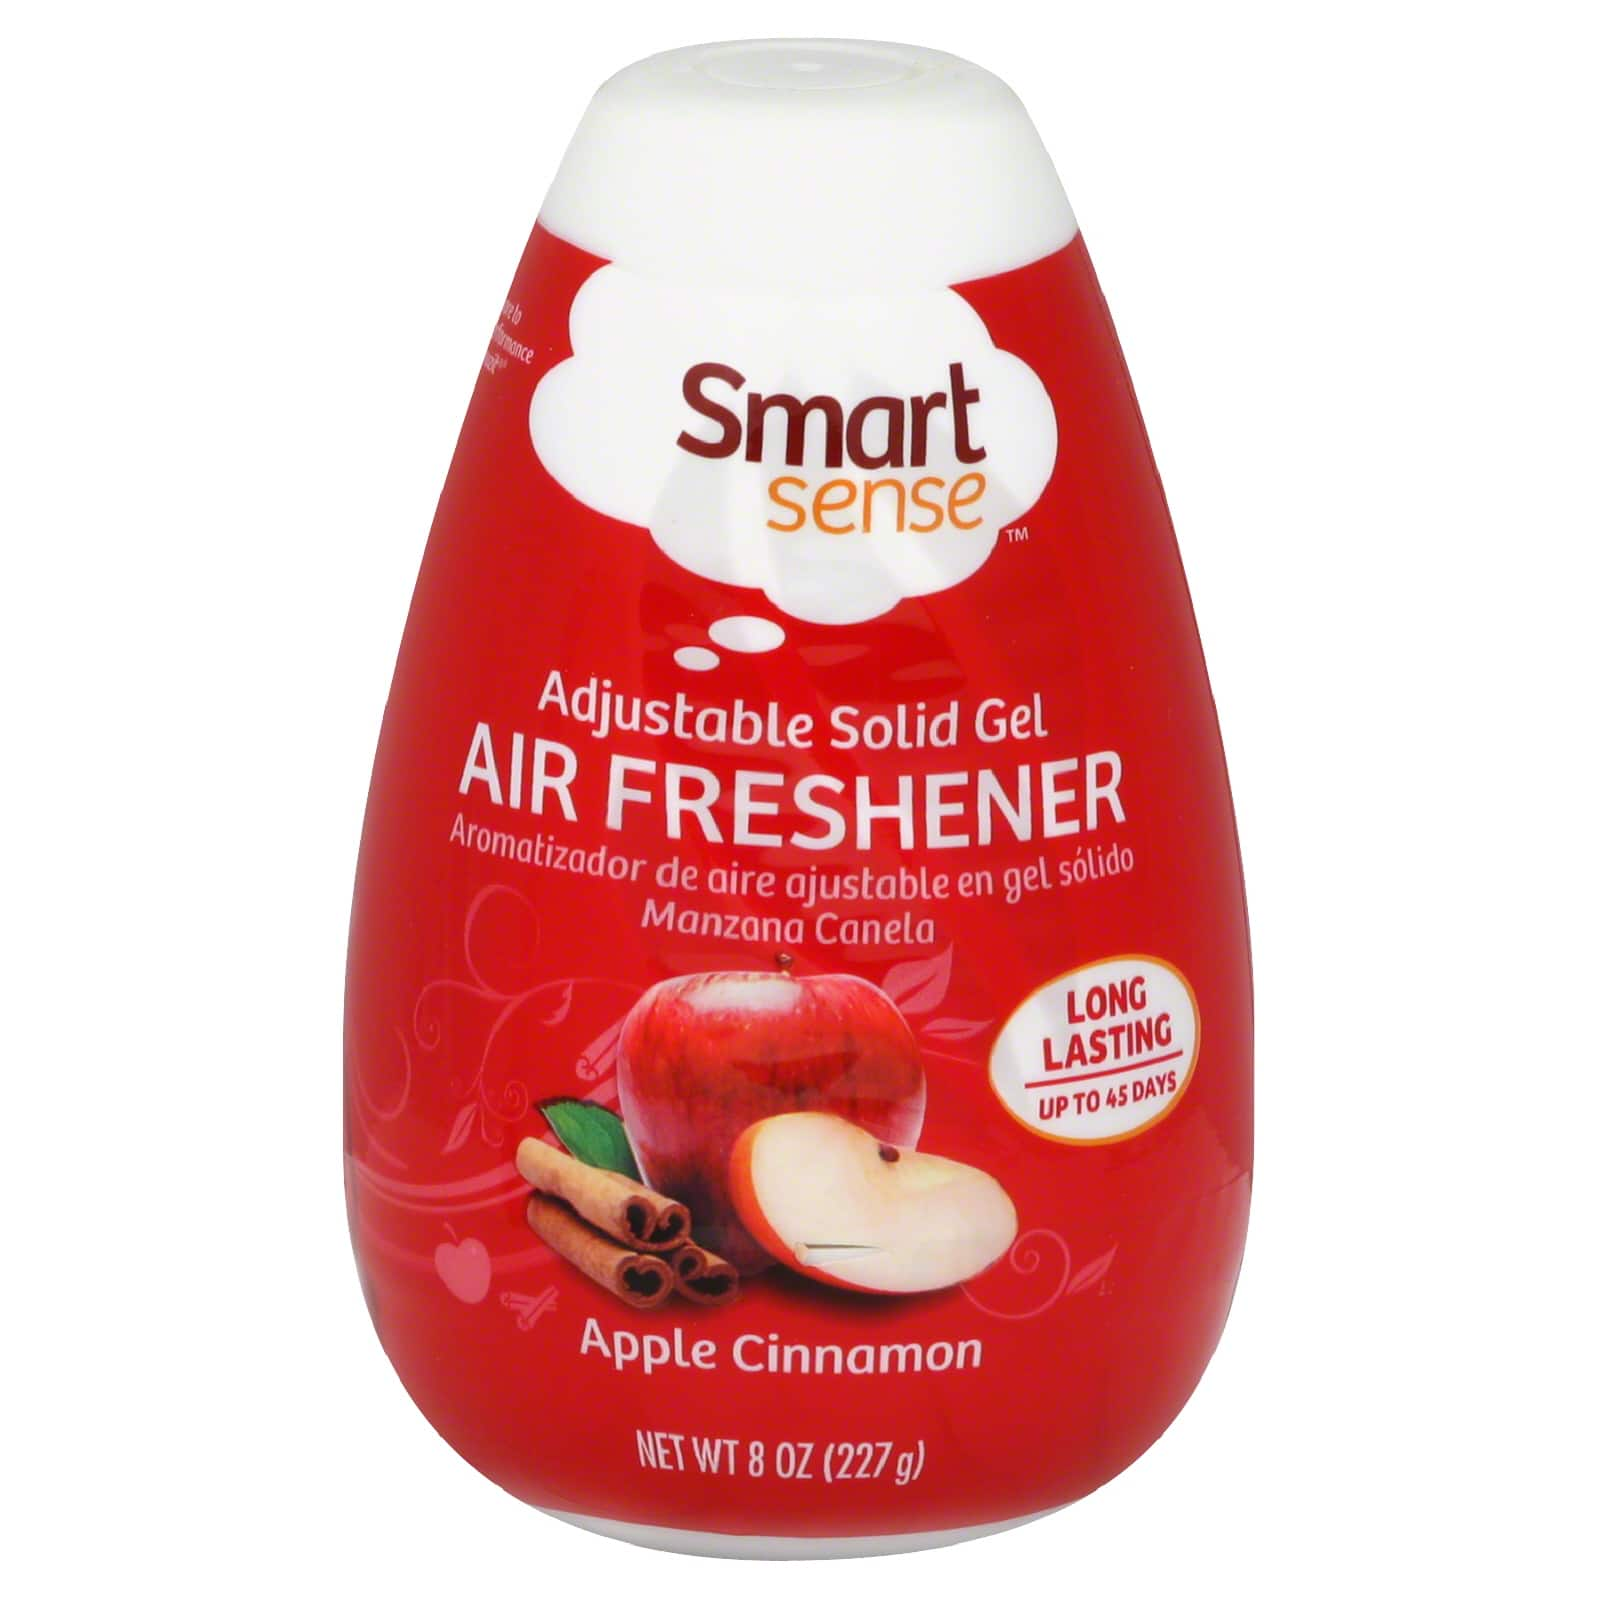 Free Smart Sense 8 oz. Air Freshener (Assorted Varieties) After Coupon @ Kmart B&M via iOS or Android App - Must Be Loaded on Friday,  10/14/16 Only!